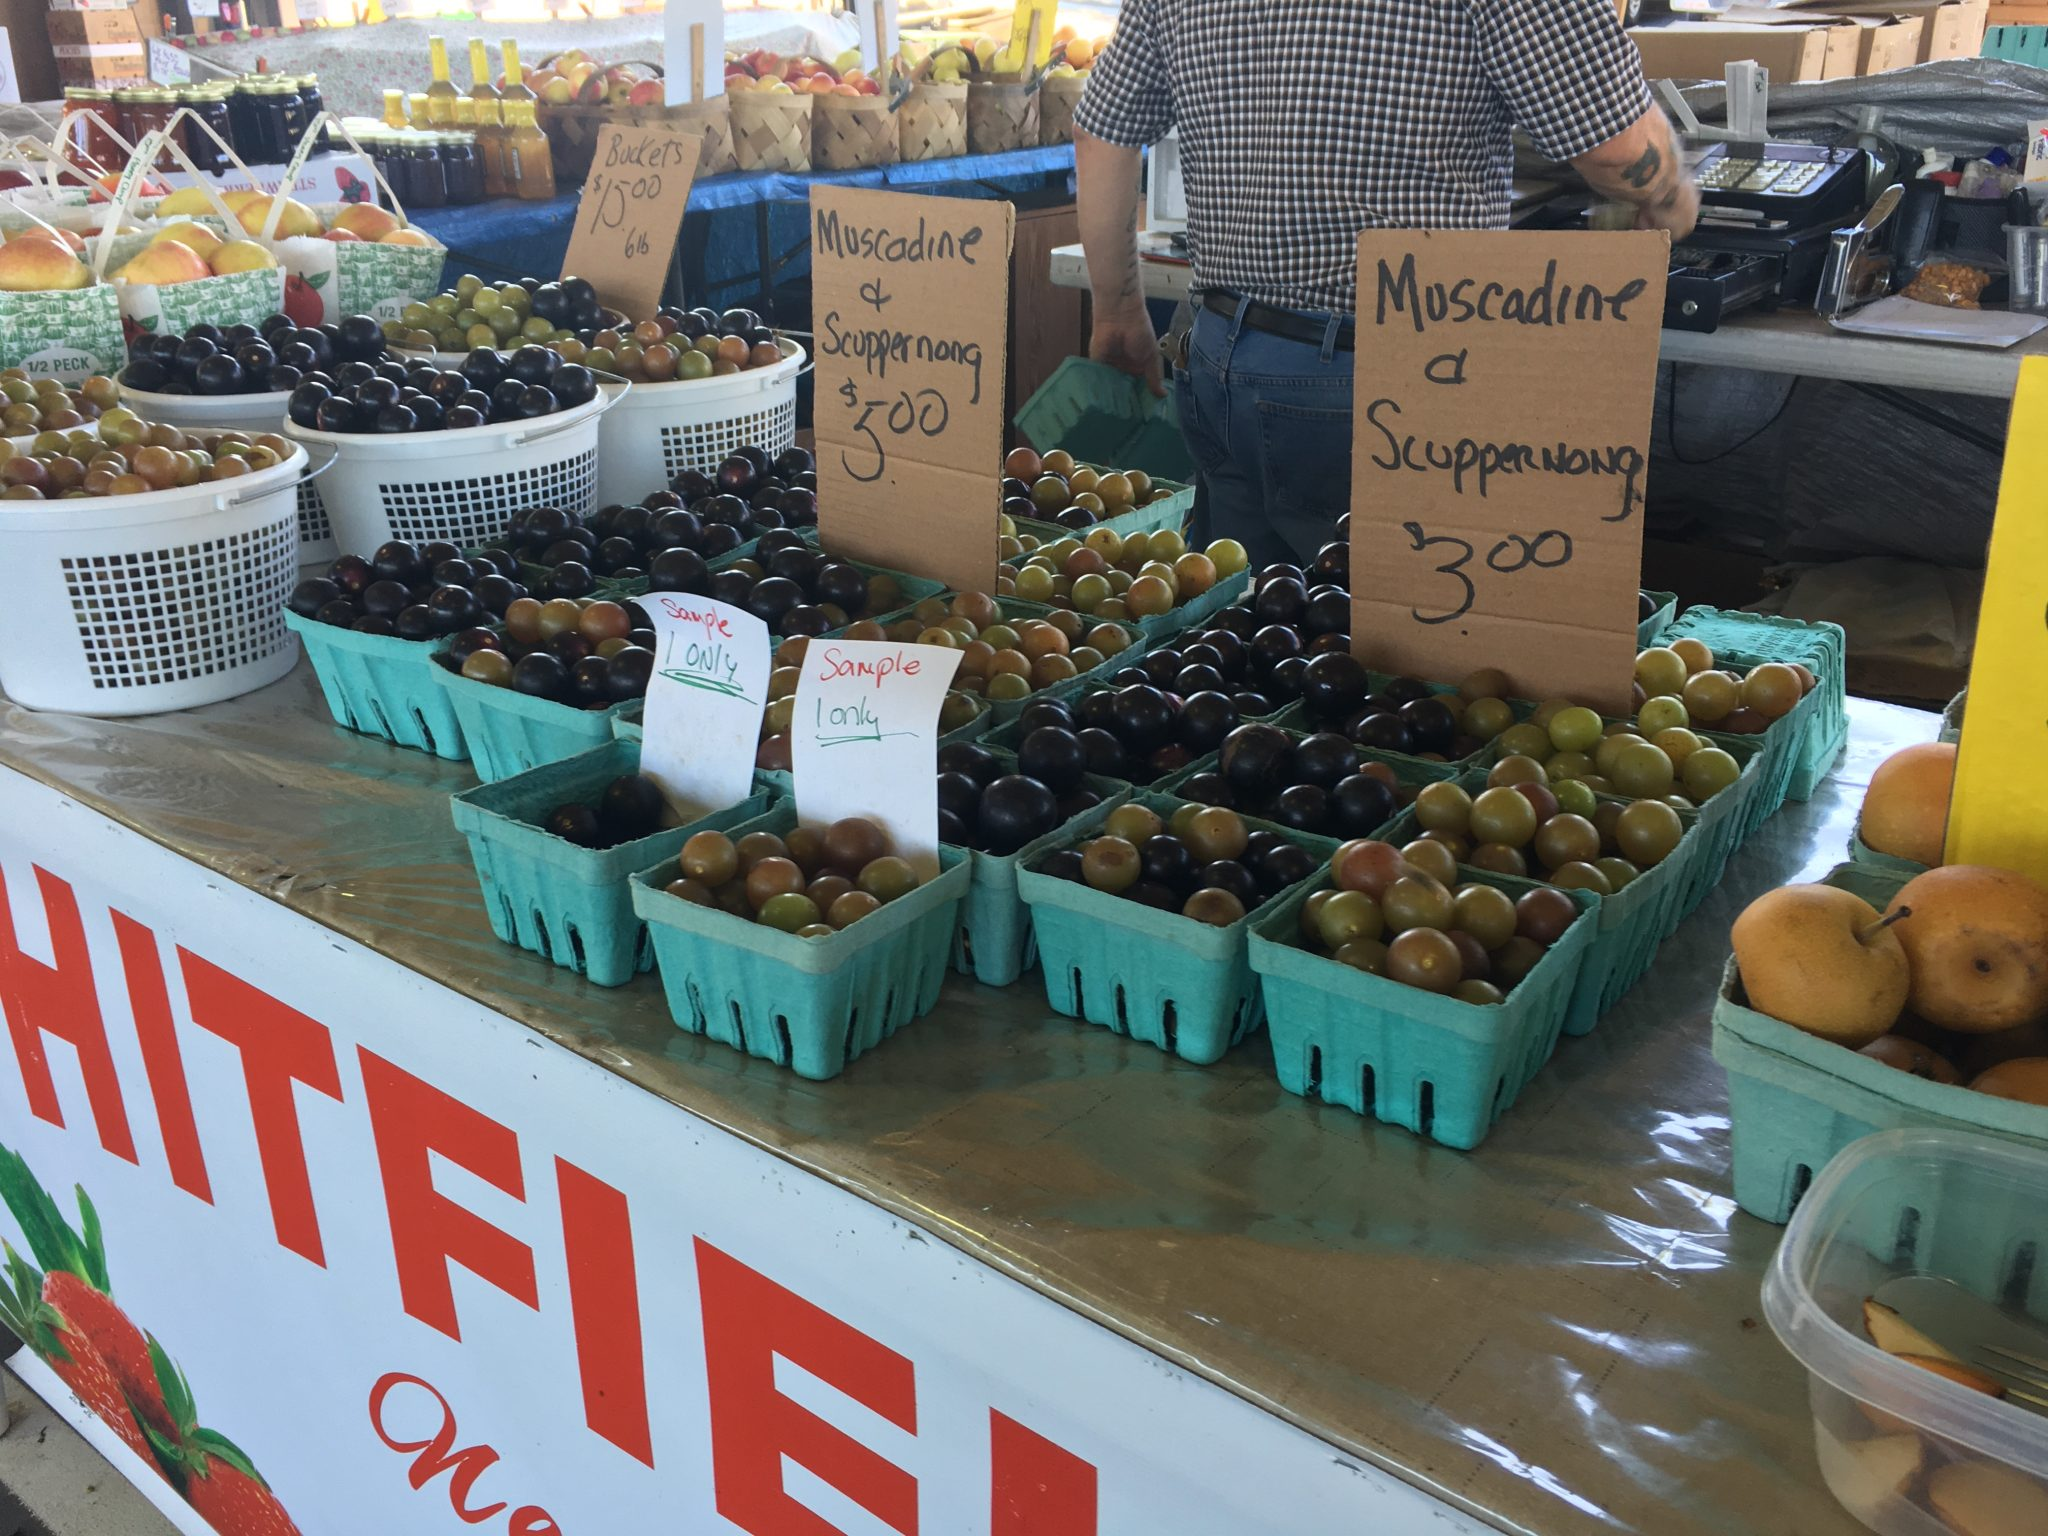 Display of muscadine grapes, both colors, in green cardboard pints and quart boxes with hand printed signs on stand at NC State Farmers Market